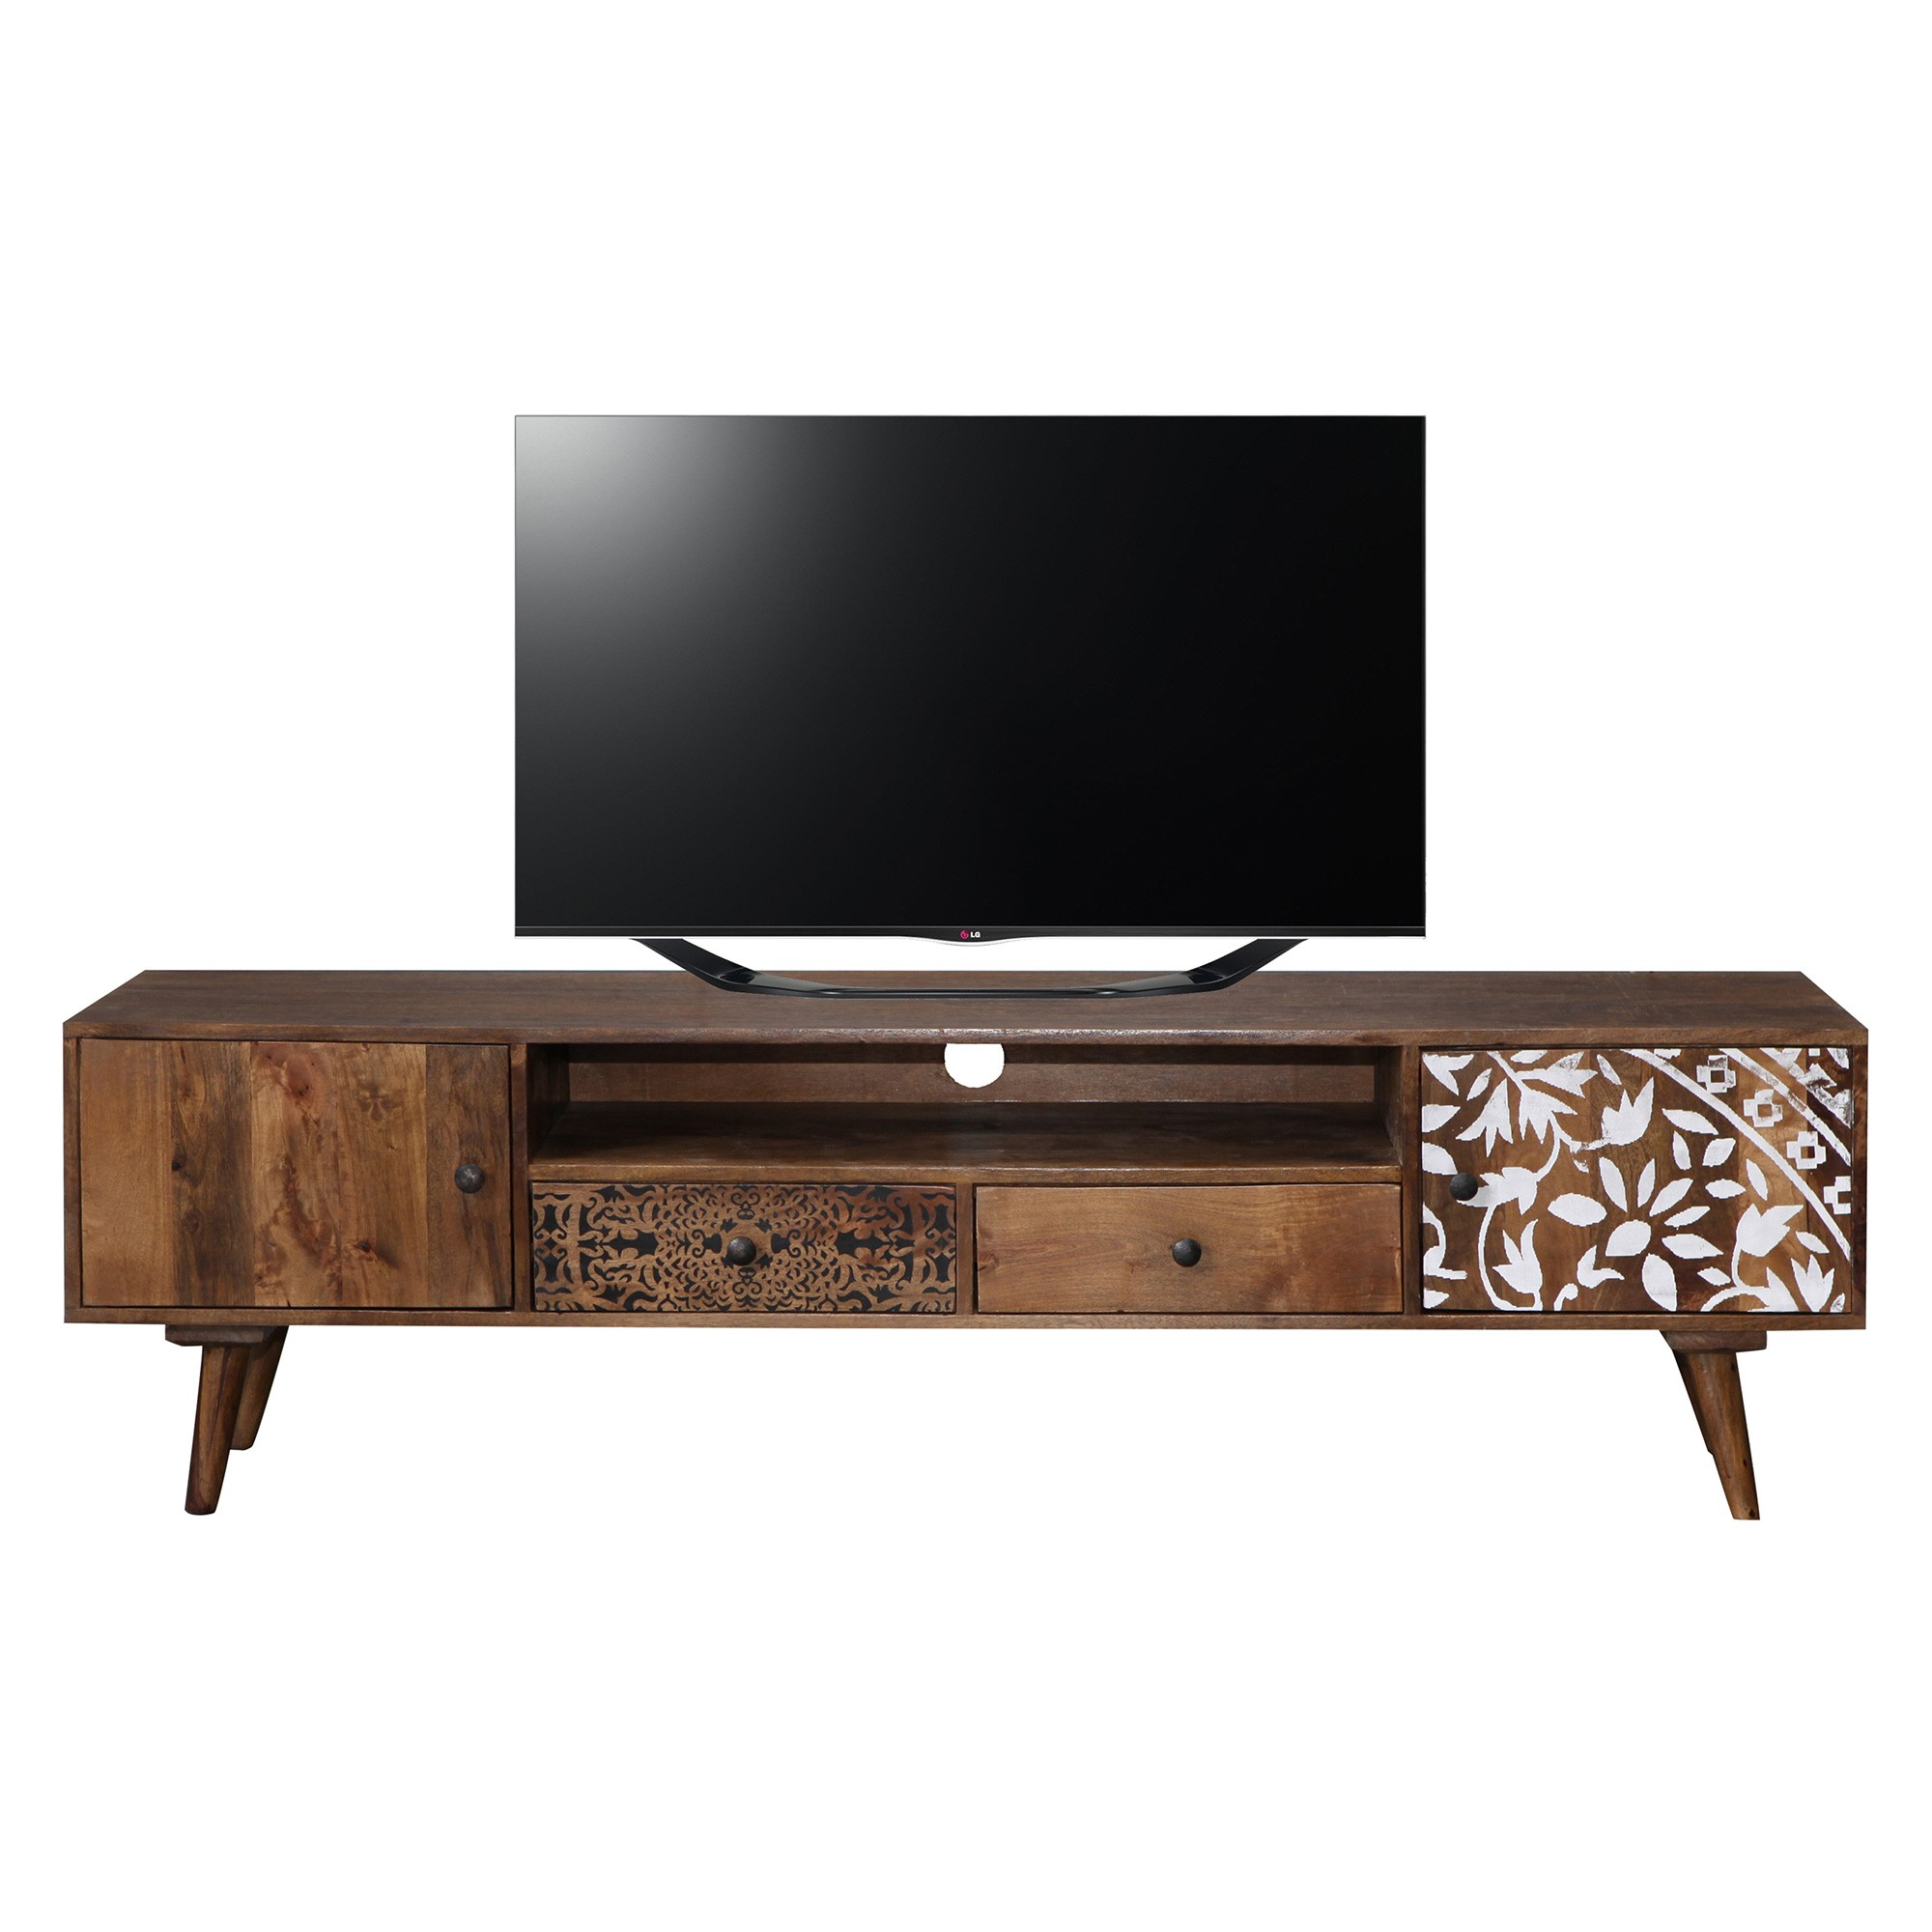 Lismore Timber 2 Door 2 Drawer TV Unit, 180cm